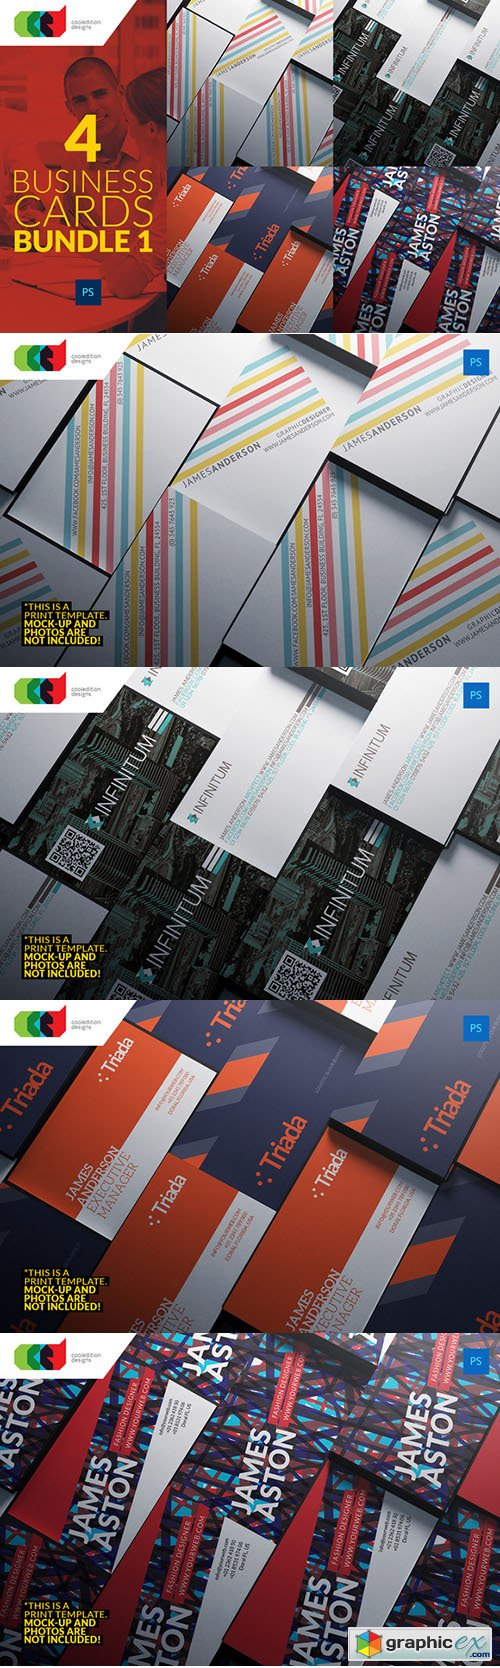 4 Business Cards Bundle 1